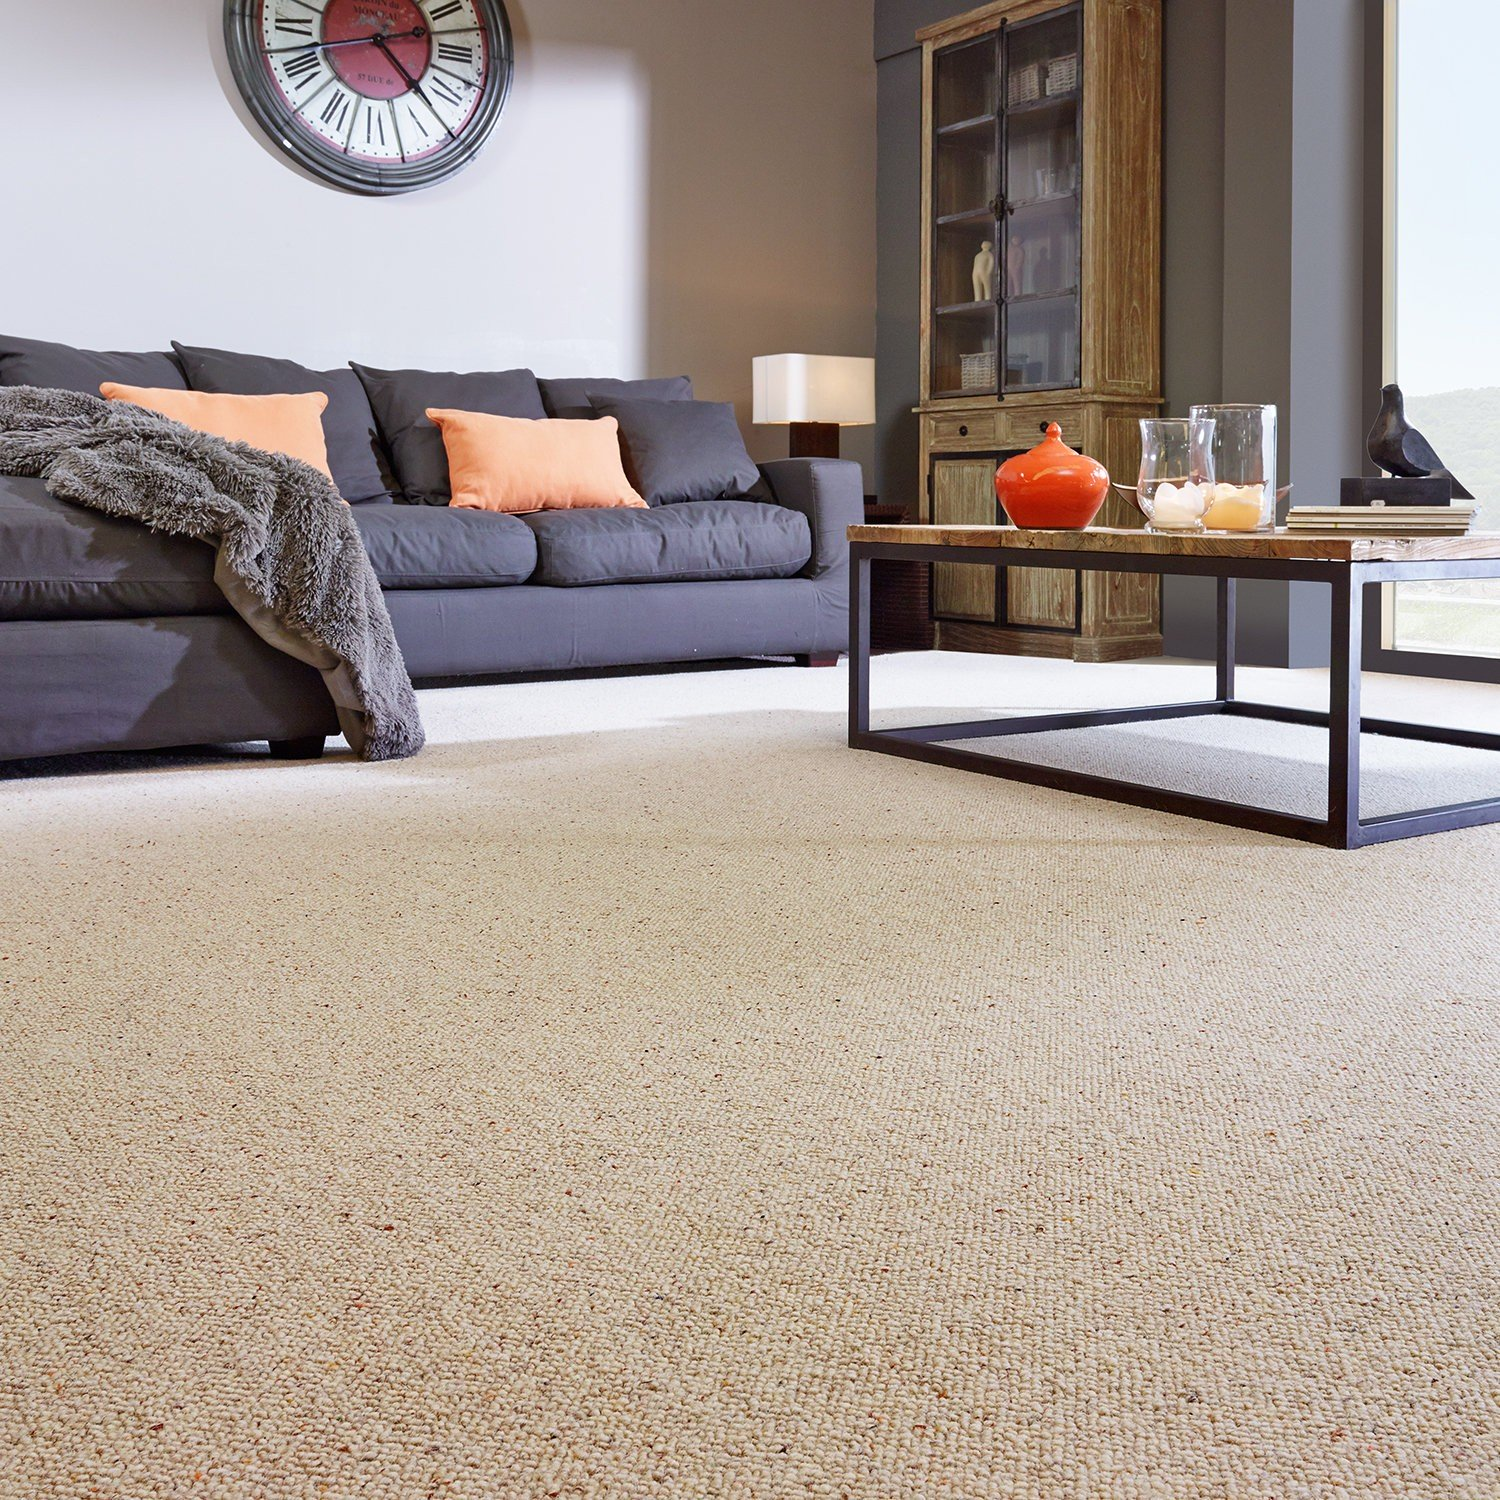 incredible-living-room-flooring-buying-guide-carpetright-info-centre-with-living-room-carpet.jpg